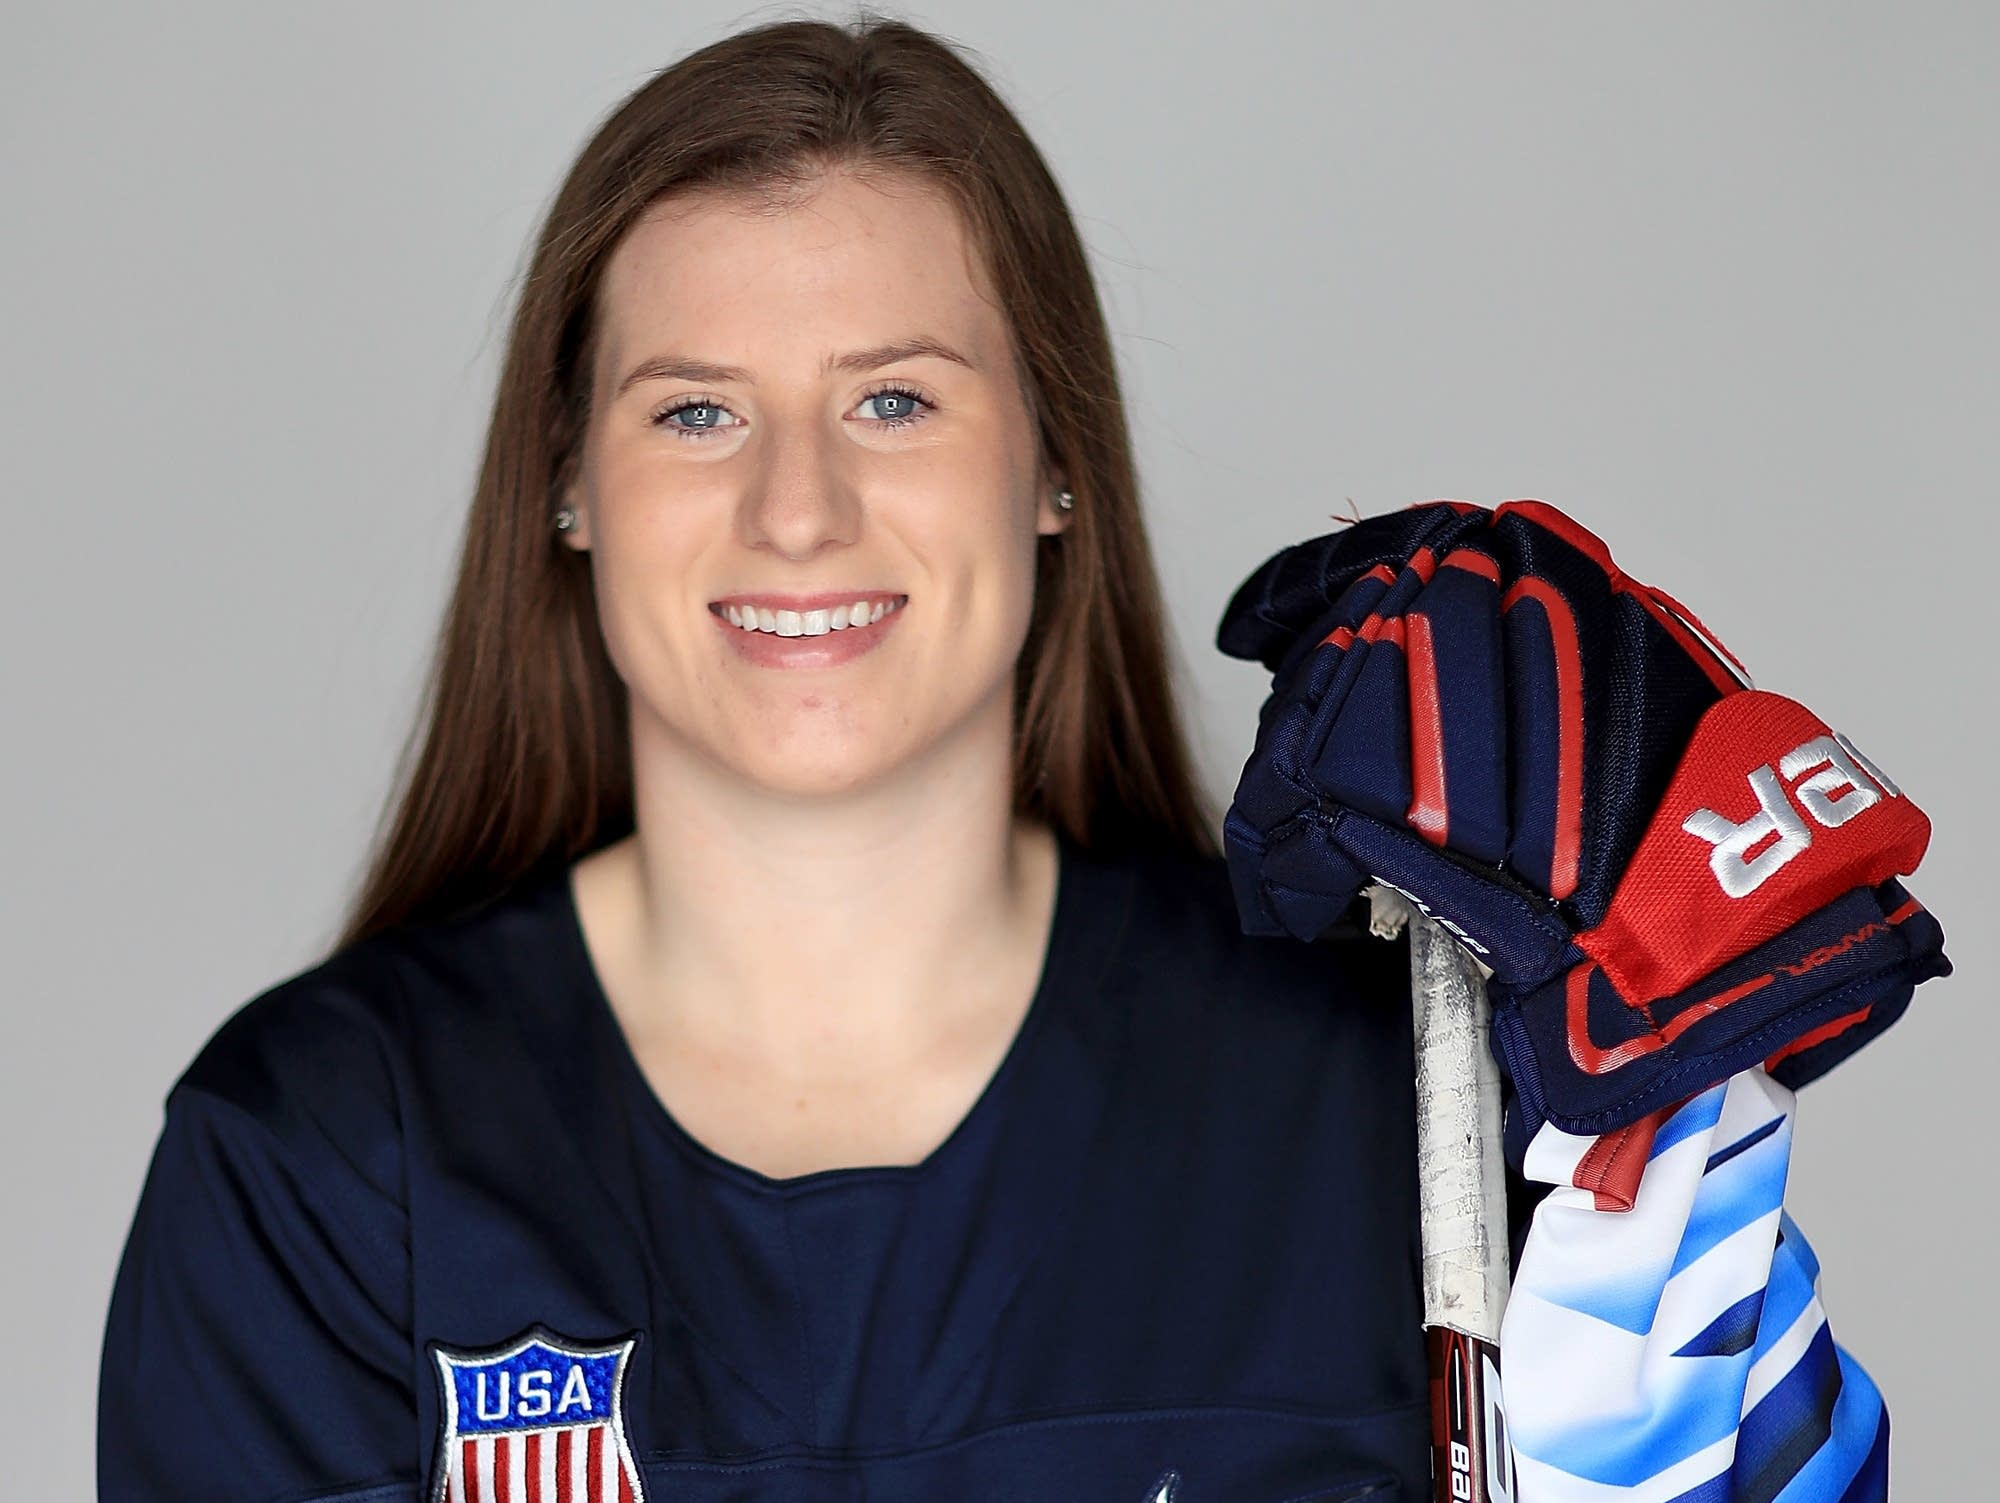 Kelly Pannek, Team USA women's hockey